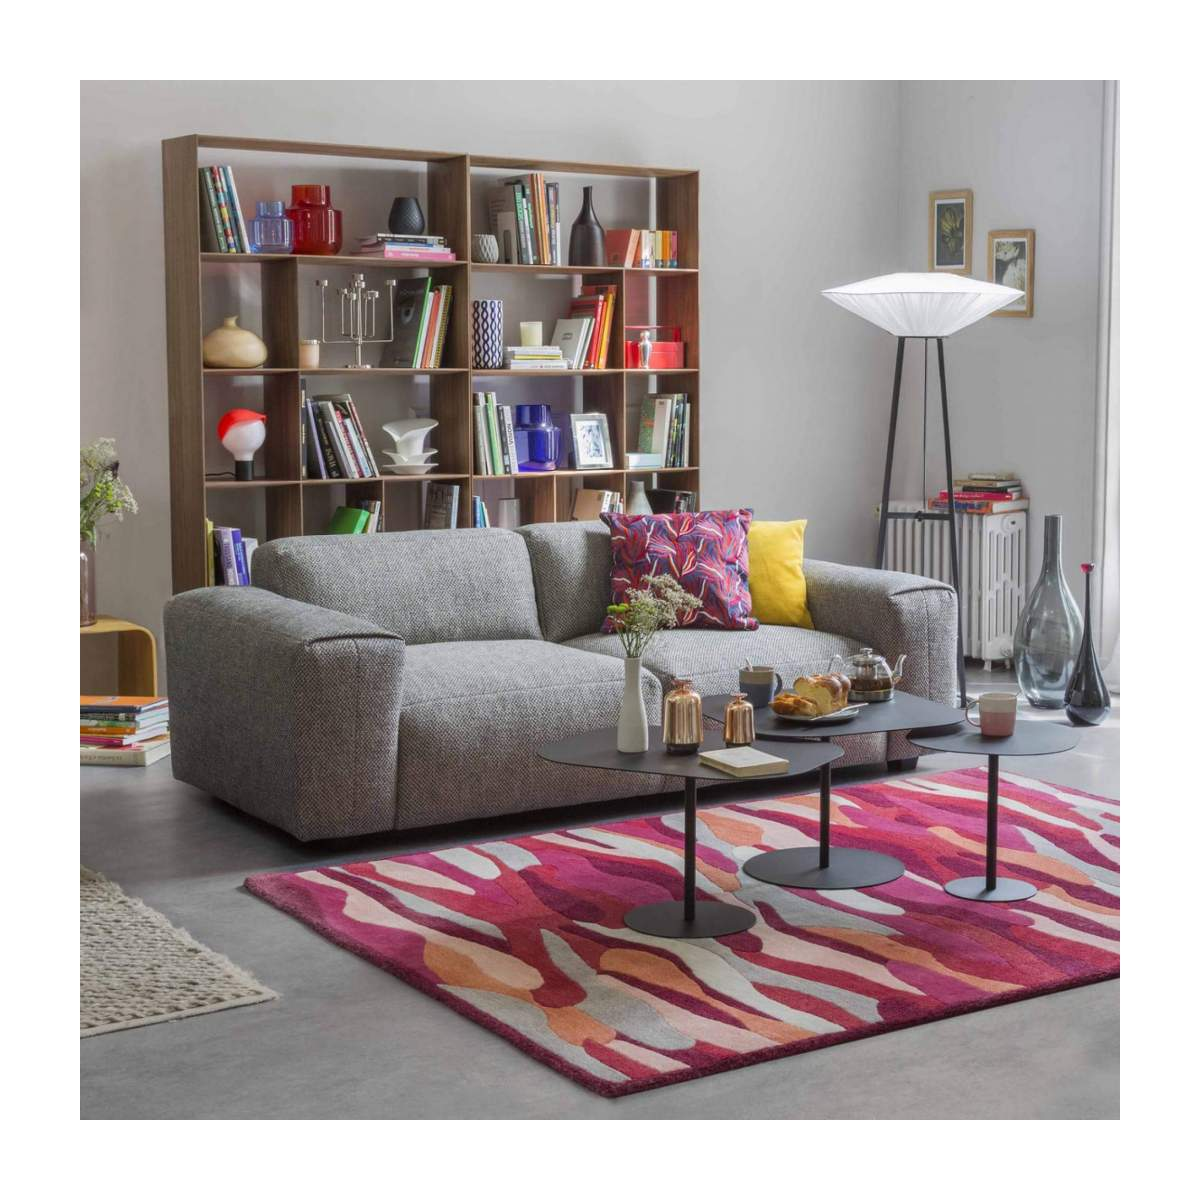 3 seater sofa with chaise longue on the left in Ancio fabric, nature n°4